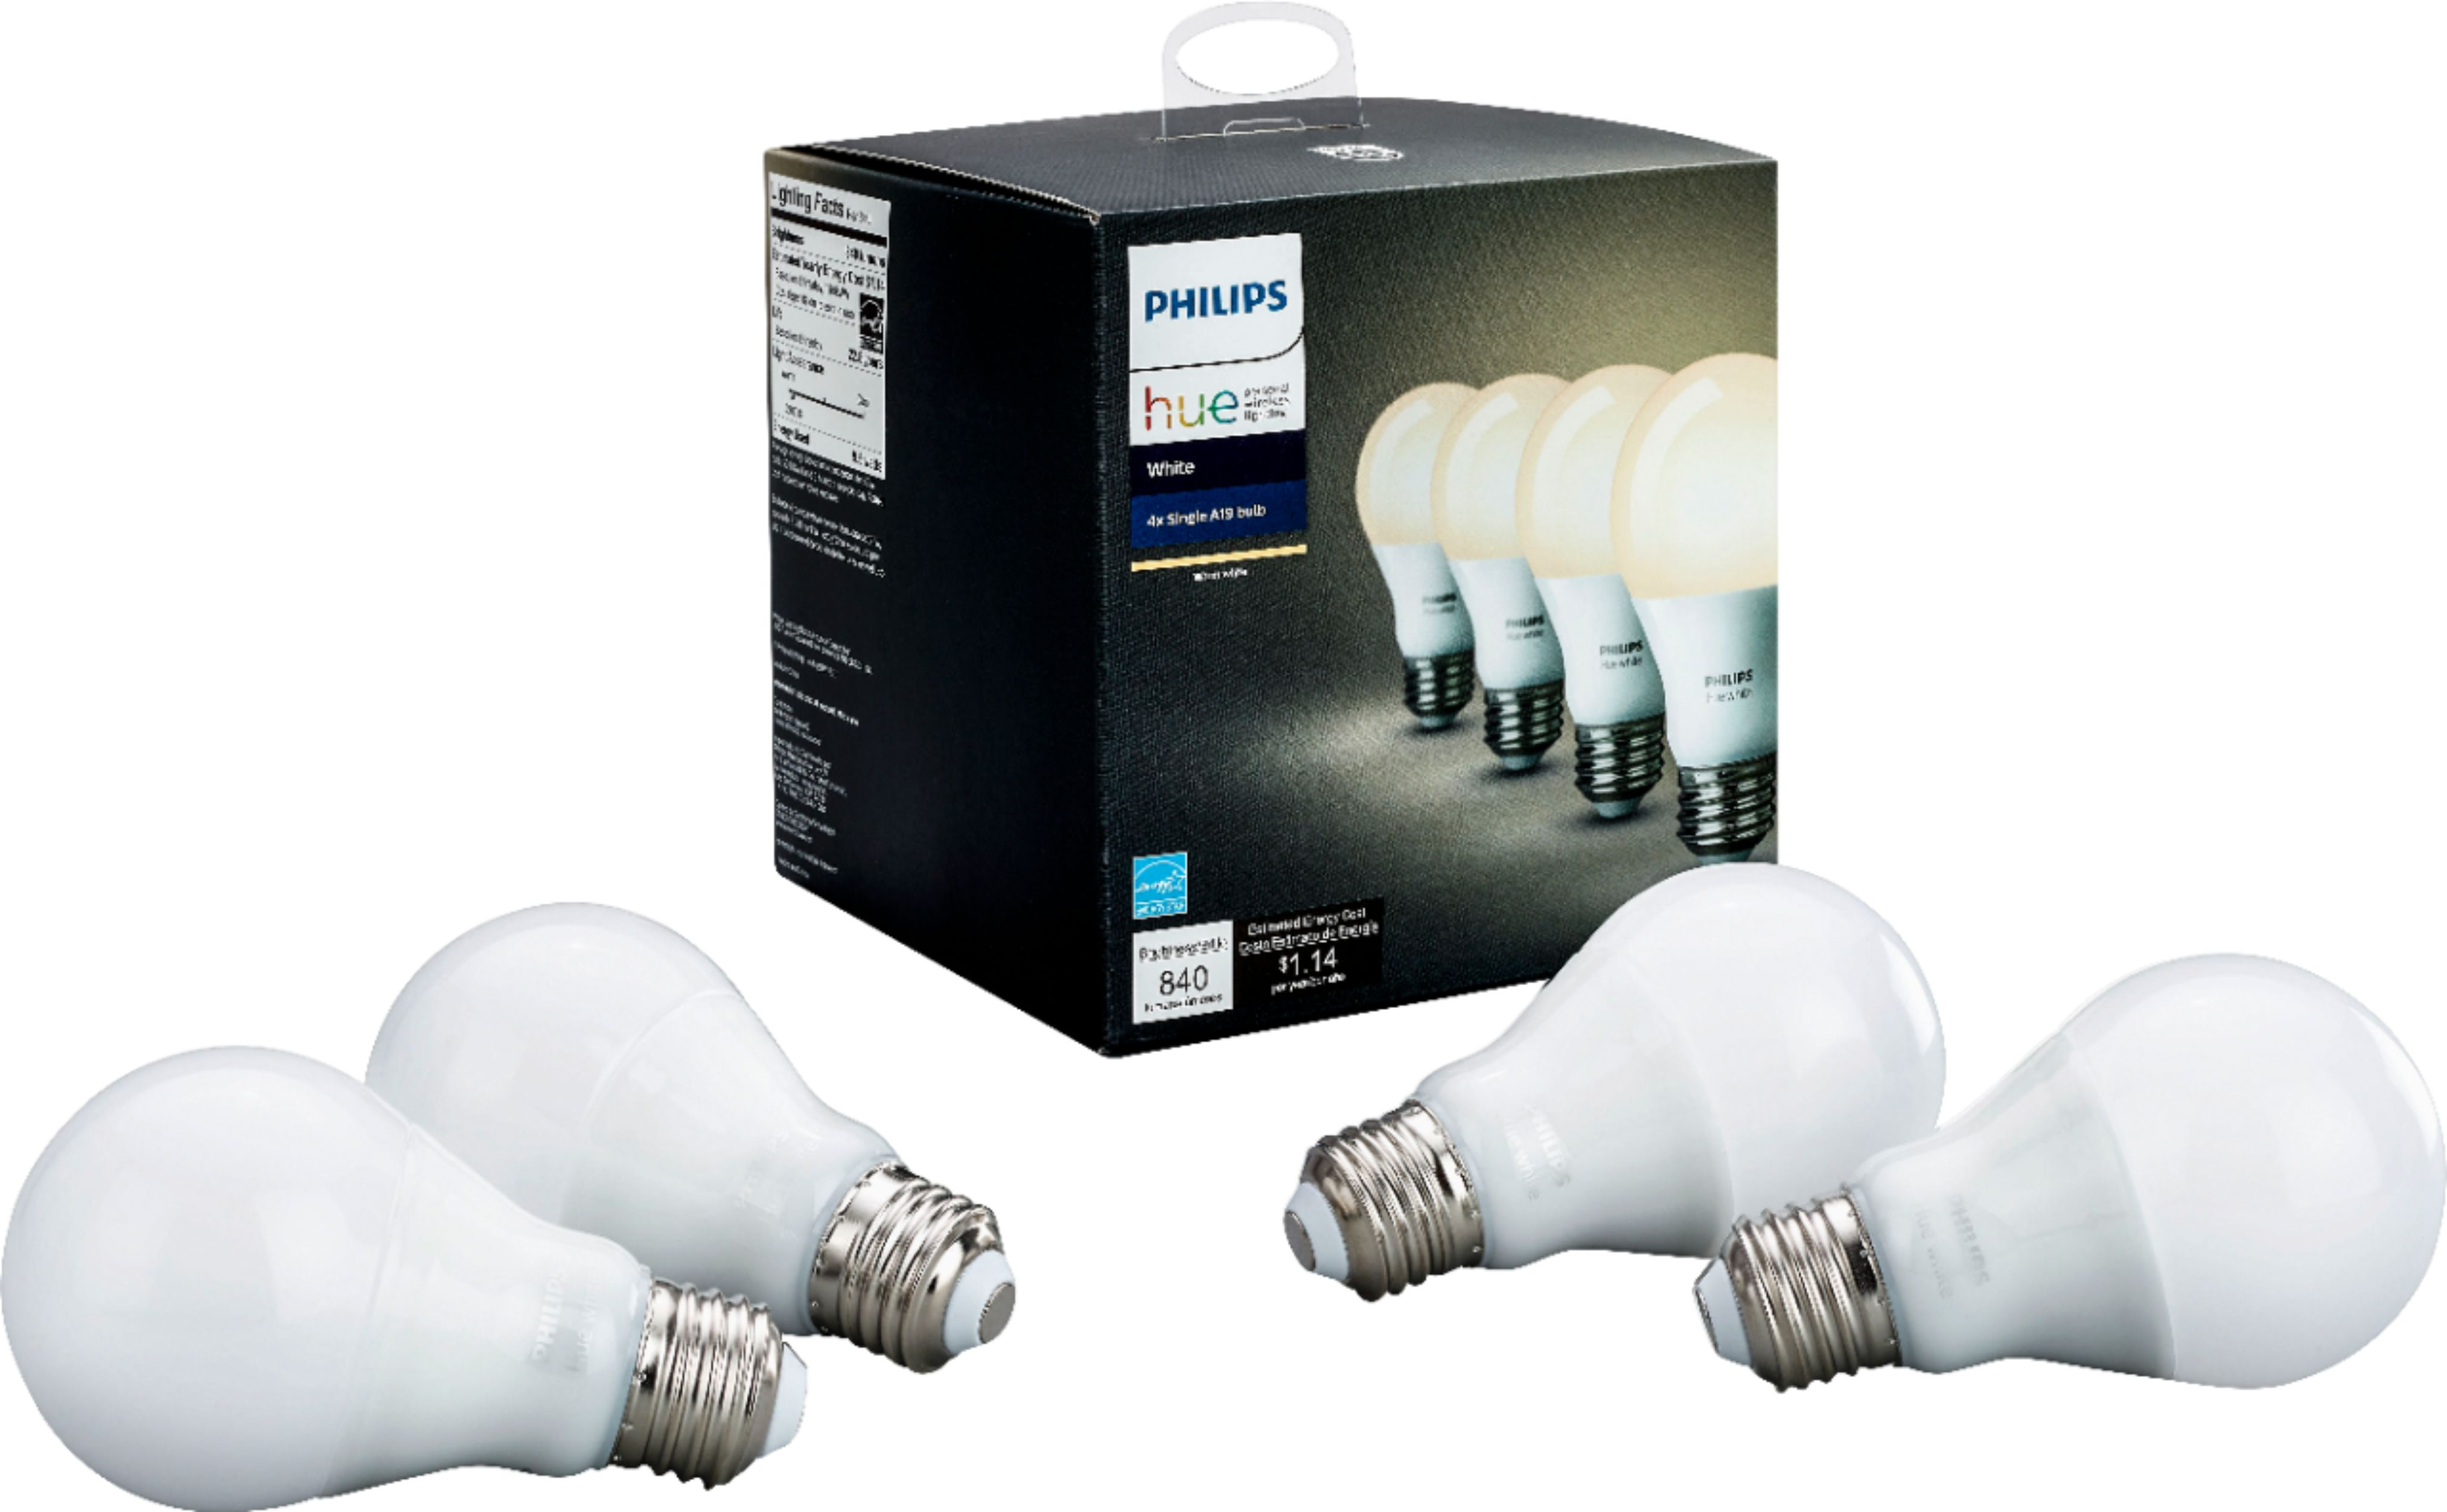 Bulb Philips Philips Hue White A19 Wi Fi Smart Led Bulb 4 Pack California Residents White